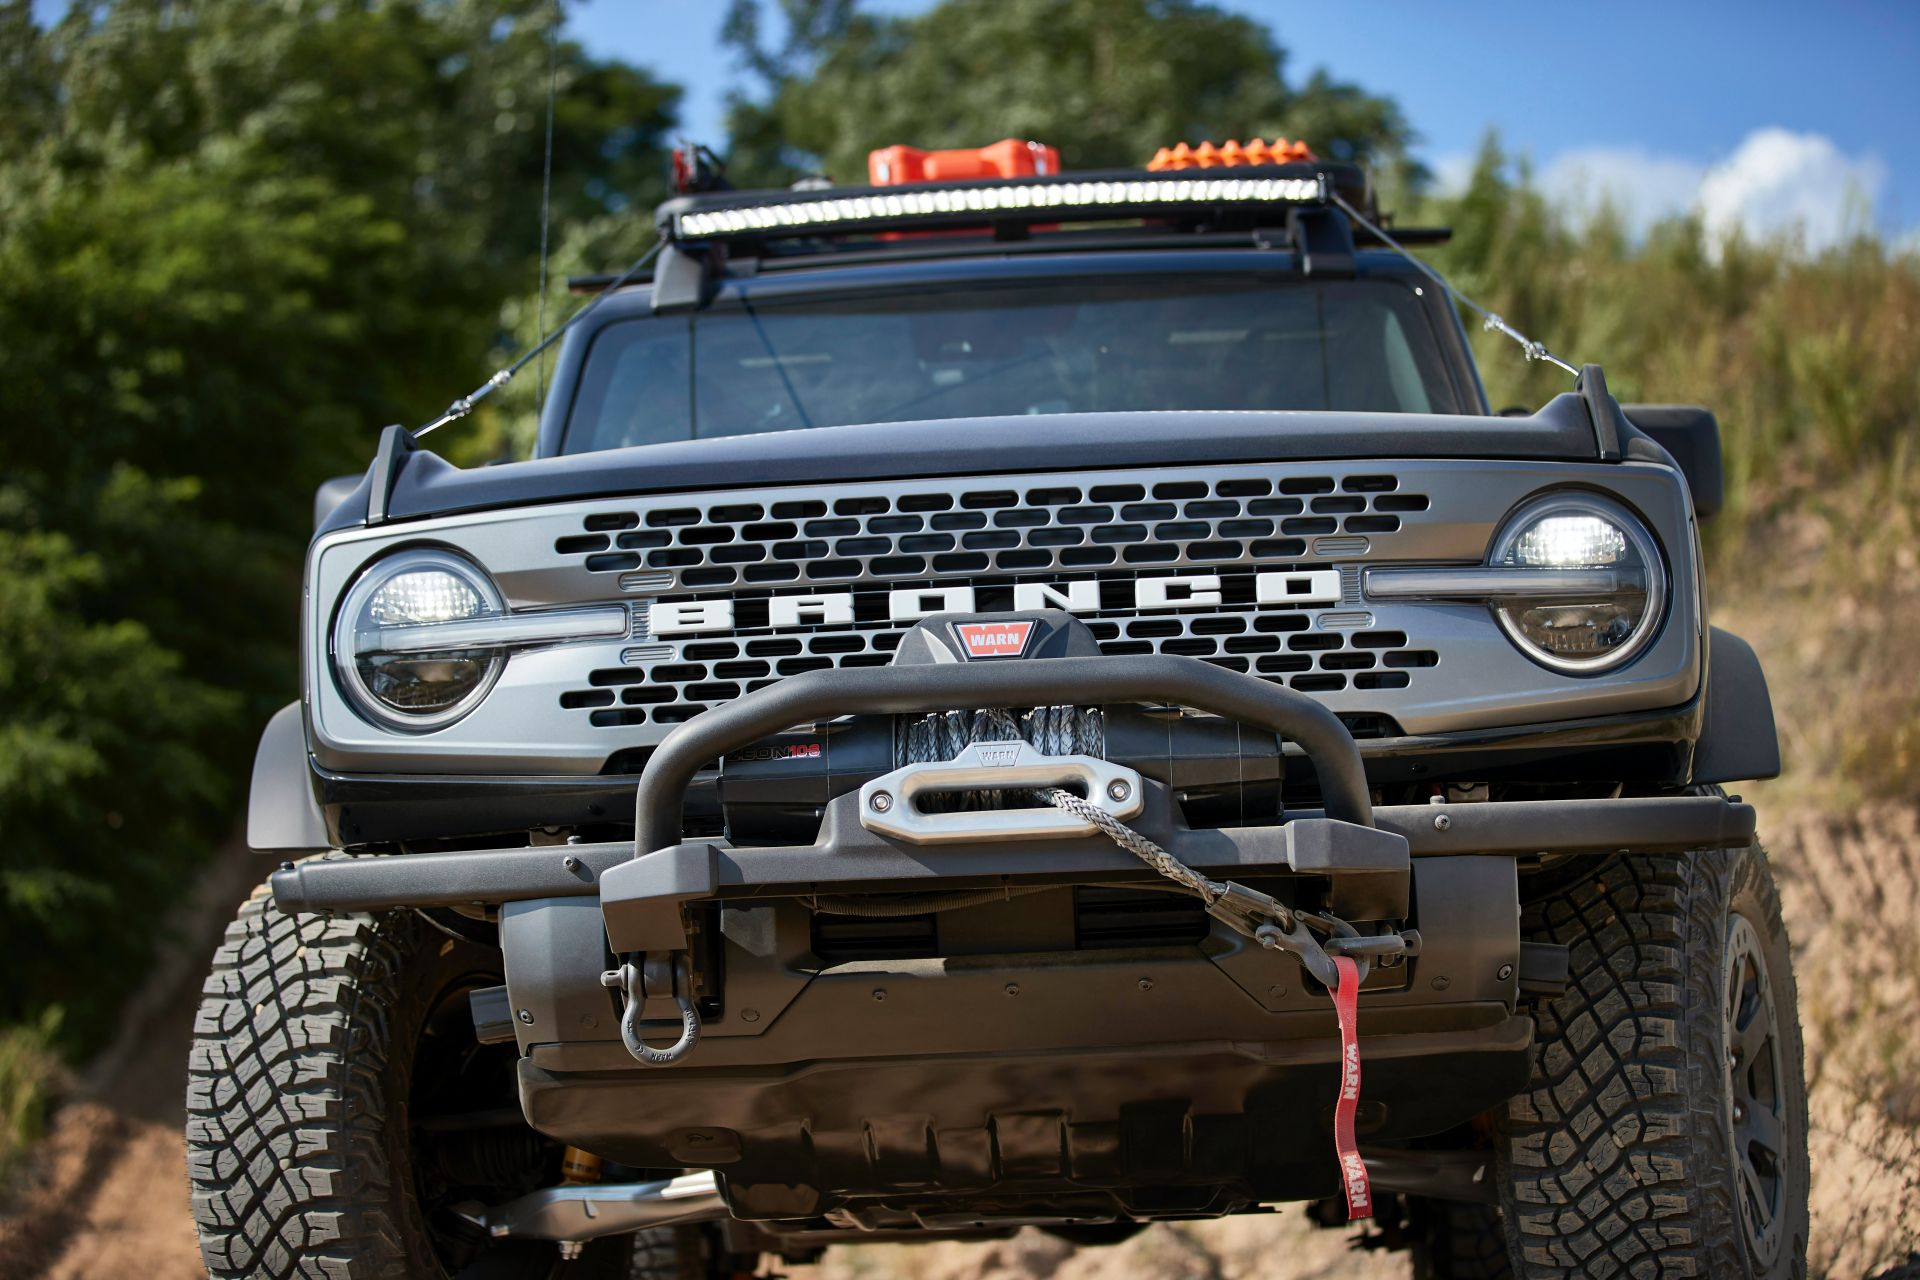 Ford-Bronco-2-Door-Trail-Rig-Concept-2